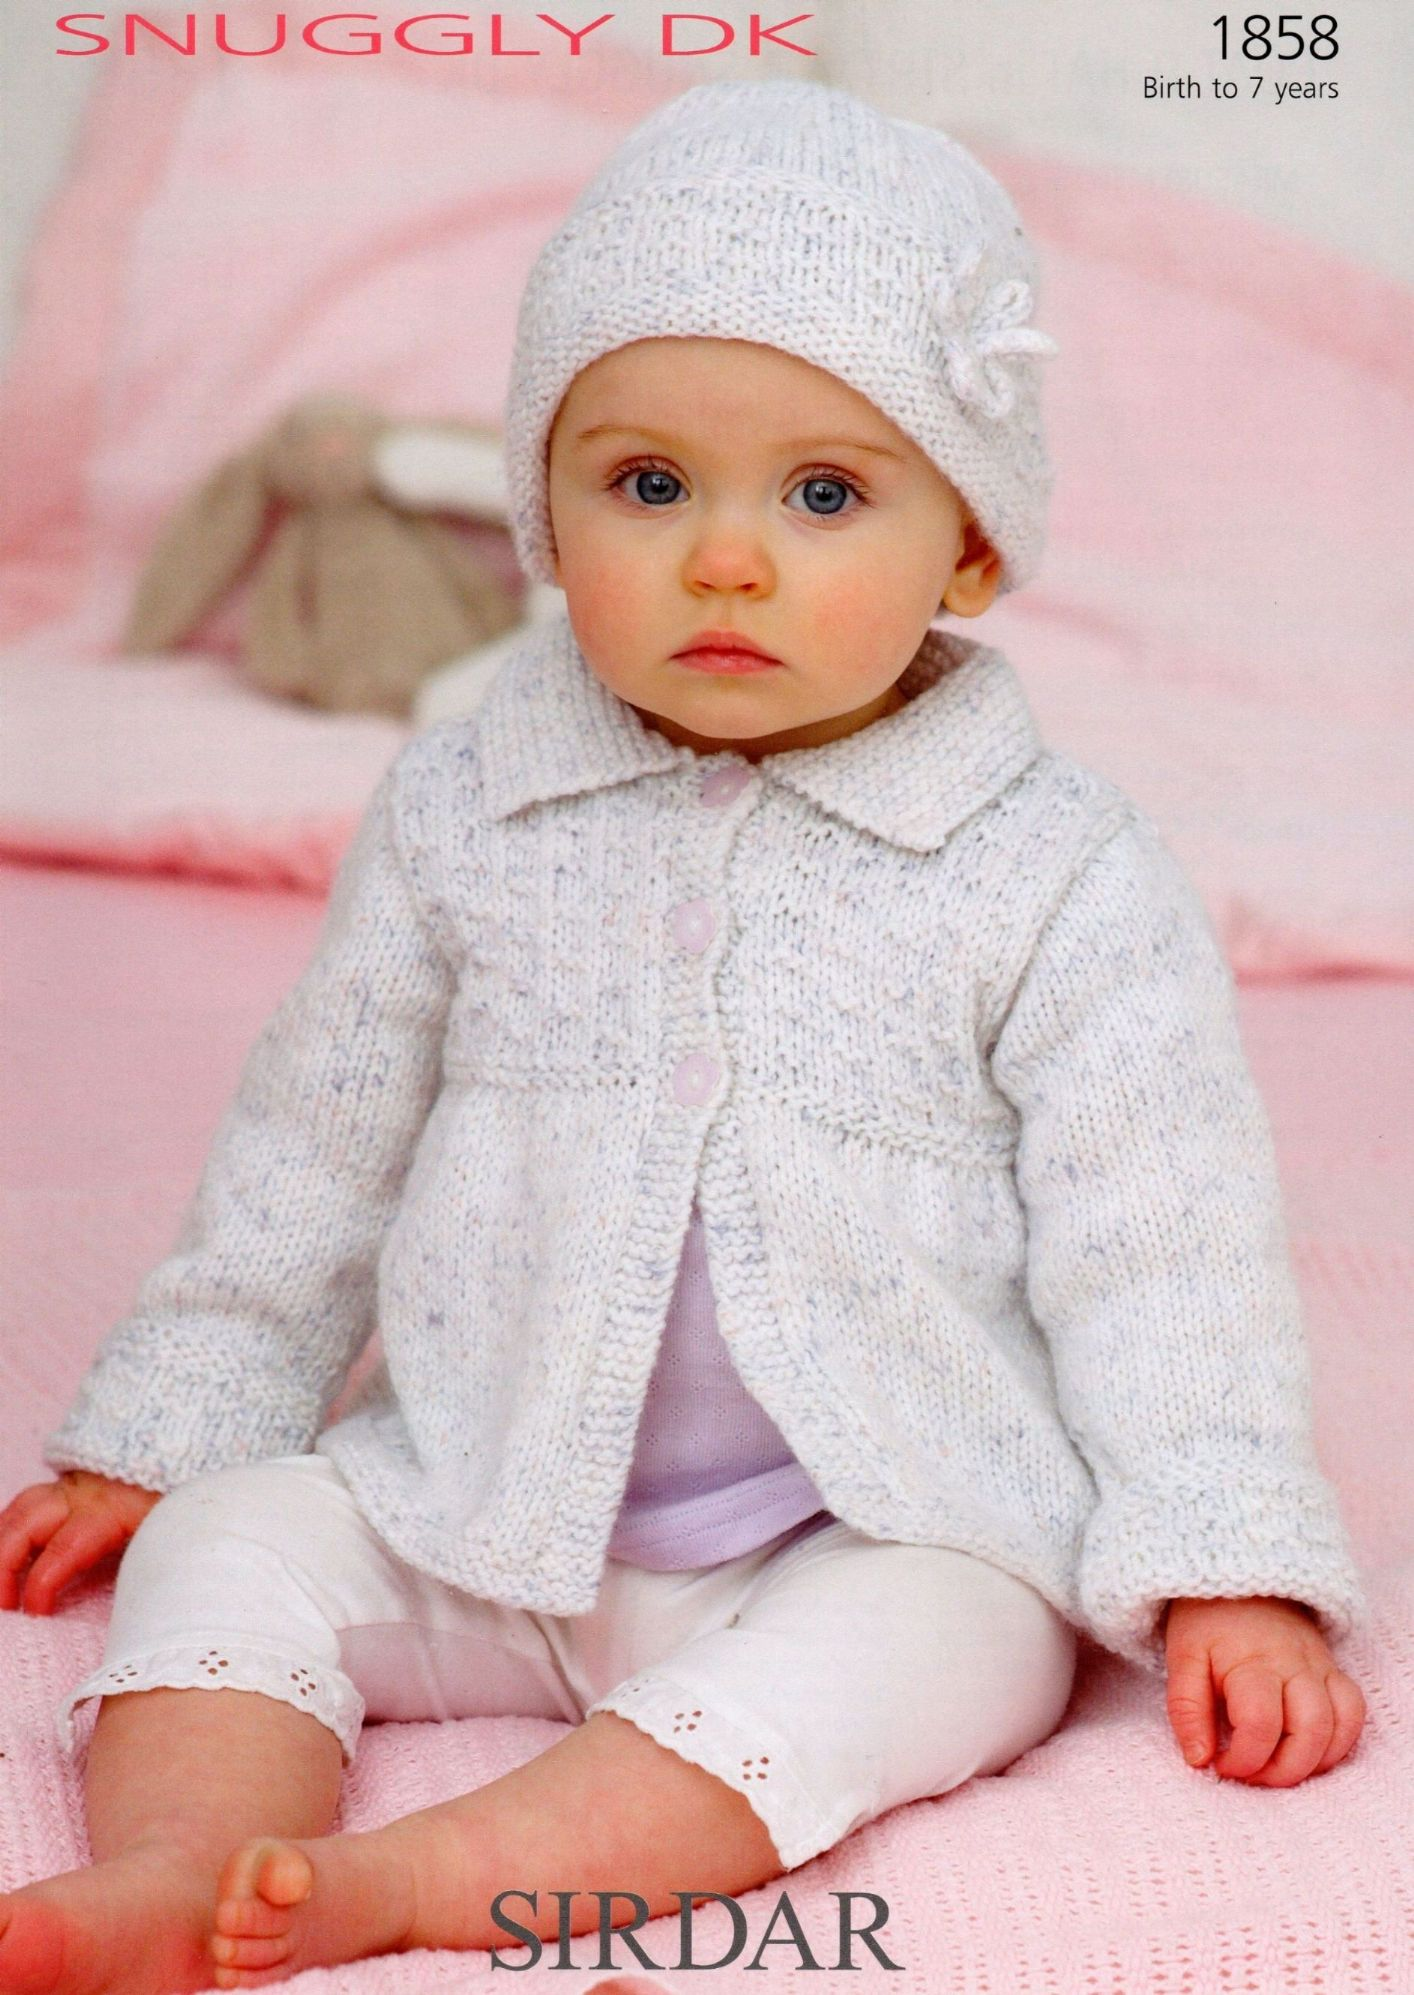 1858 - SIRDAR SNUGGLY DK COAT & HAT KNITTING PATTERN - TO FIT 0 TO 7 YEARS